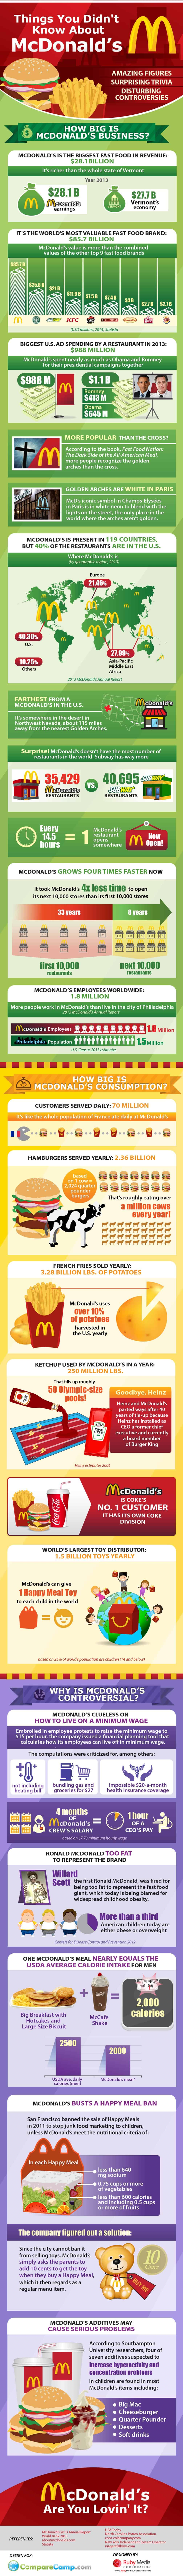 Super Size McDonald's Facts_Full Infographic